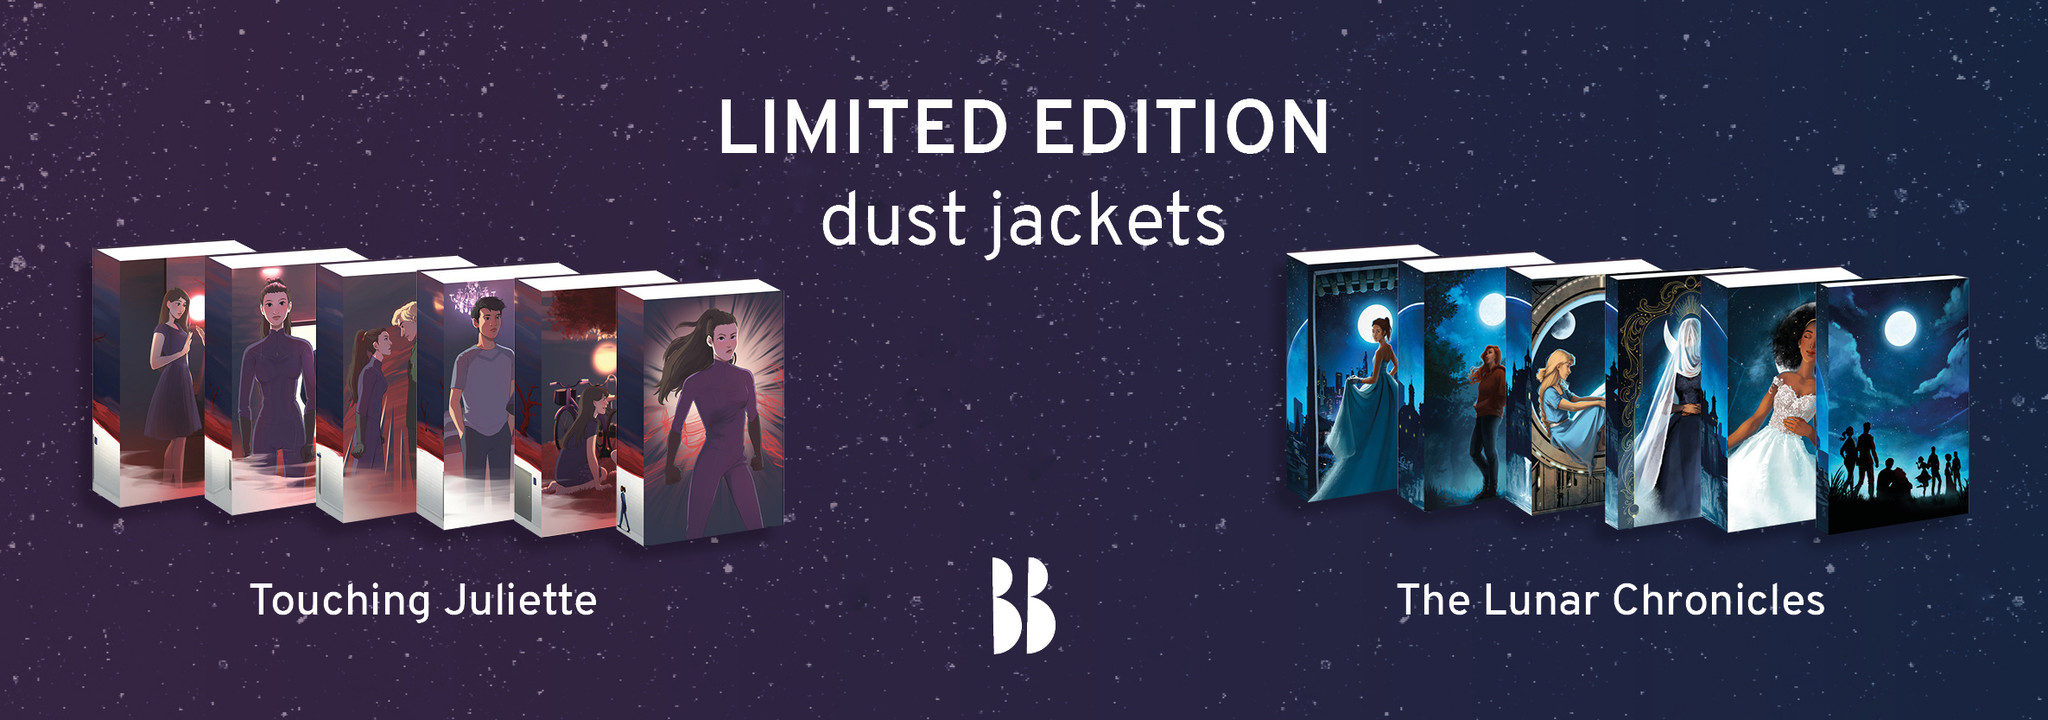 dustjackets ENG